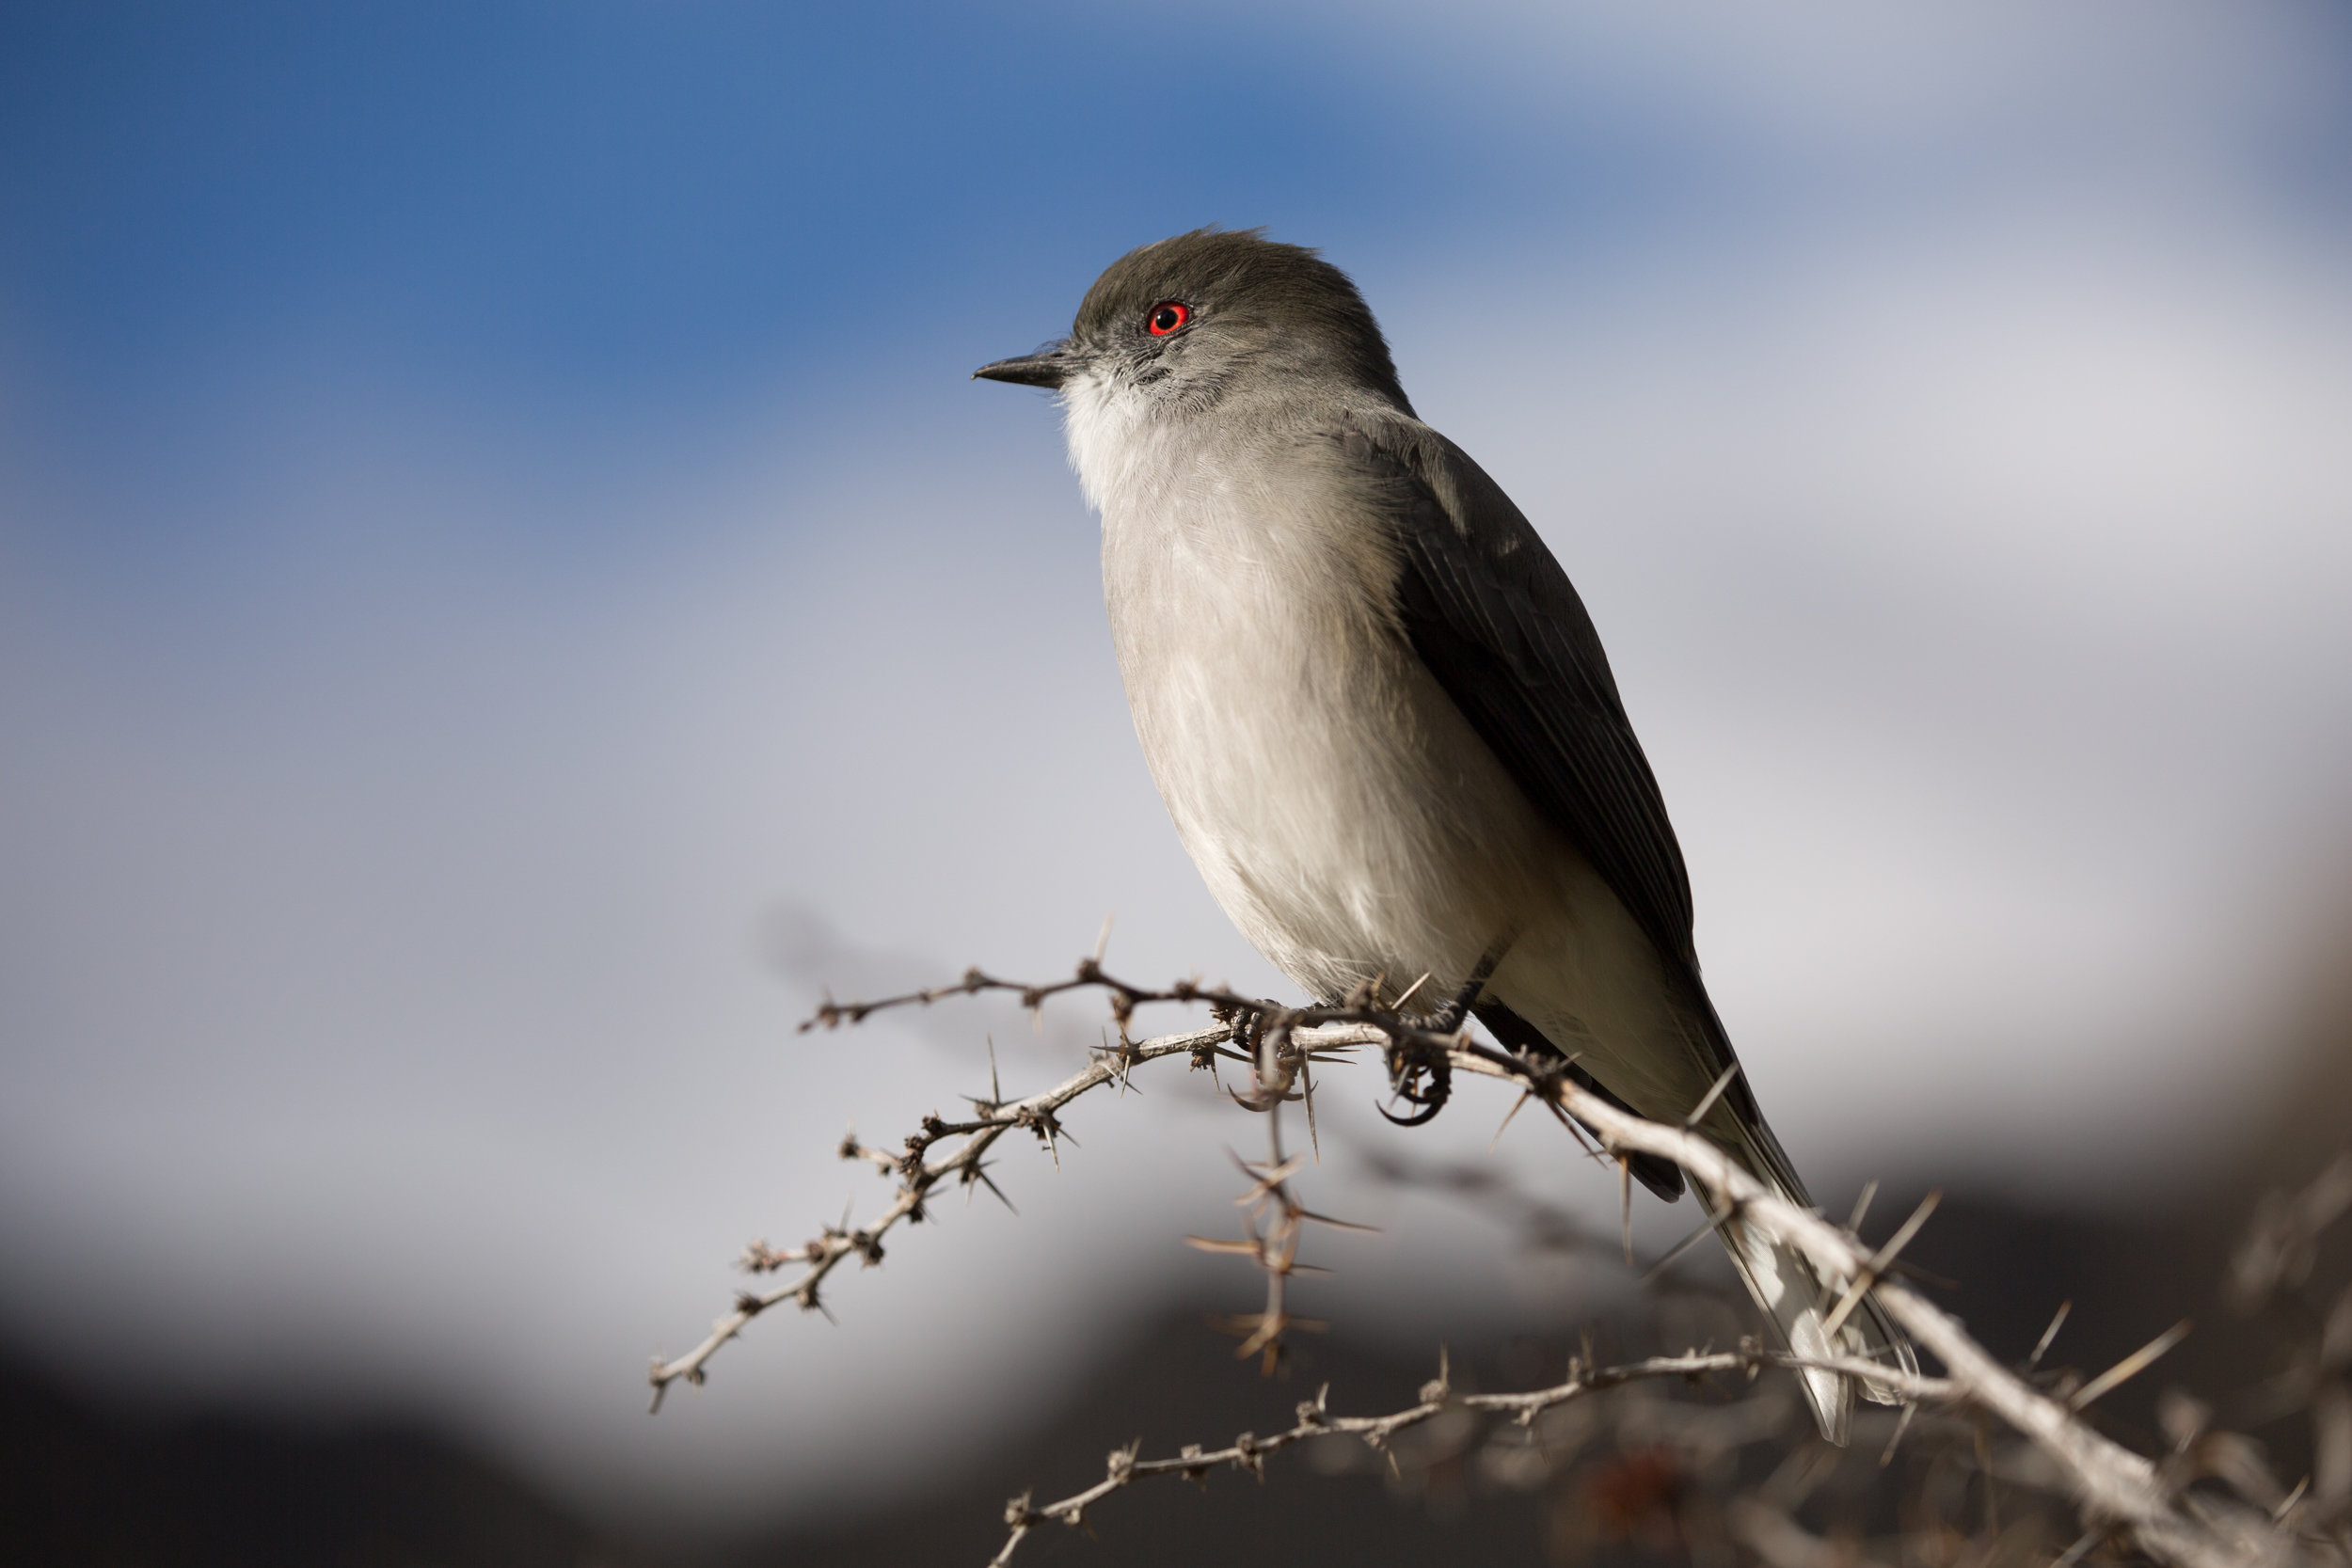 fire-eyed diucon (Xolmis pyrope) - A fire-eyed diucon in Valle Chacabuco, part of the future Patagonia National Park. These small birds are found in Chile and Argentina, their red eyes always making them distinguishable.